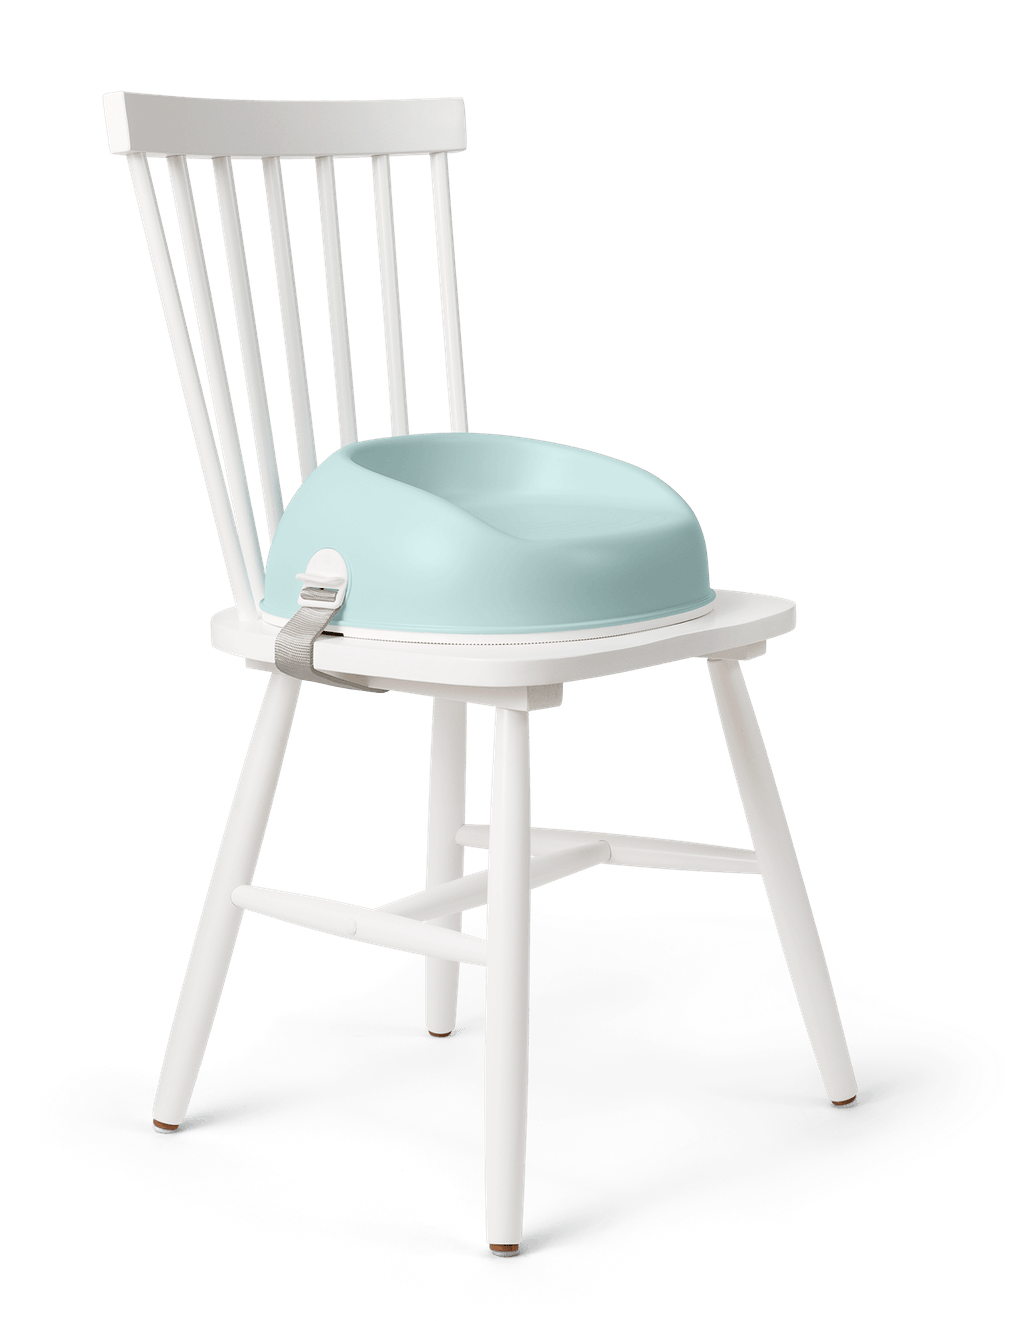 Booster Seat To Help Reach The Table Babybjorn Toddler Booster Seat Dining Booster Seat Booster Seat Dining